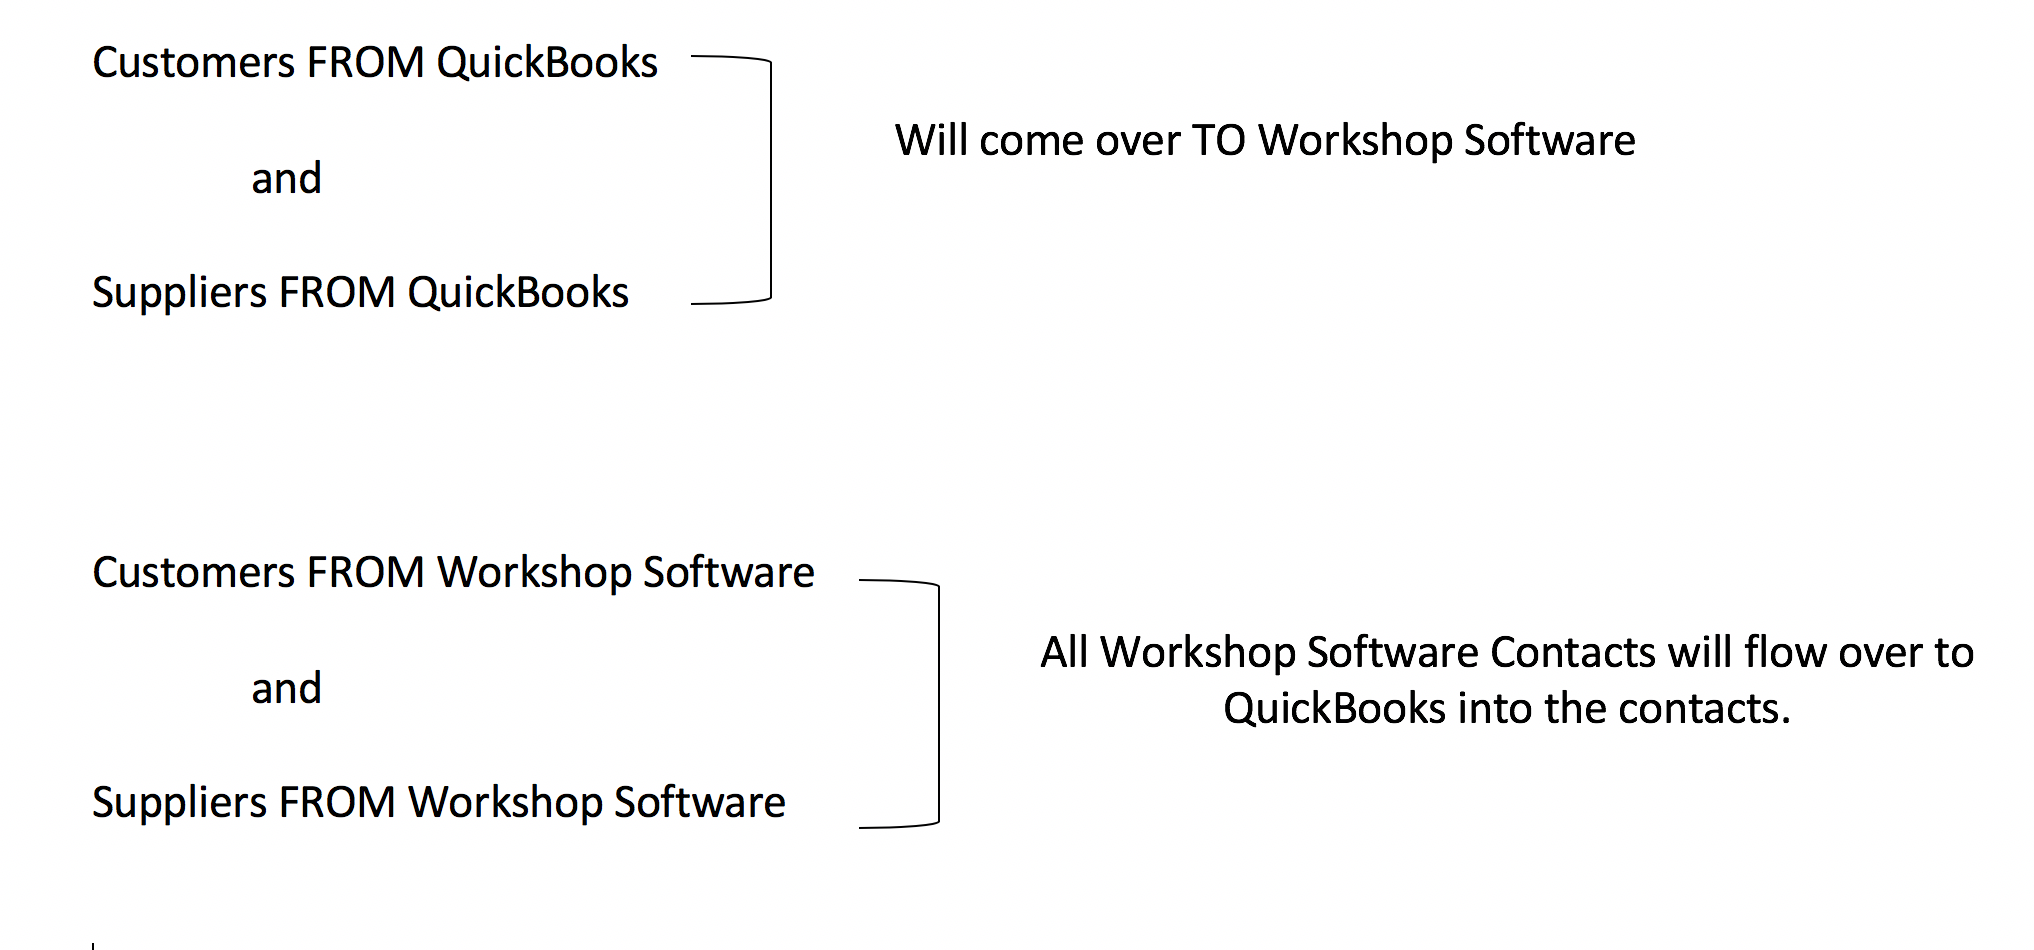 How Does The Quickbooks integration Work? - Workshop Software